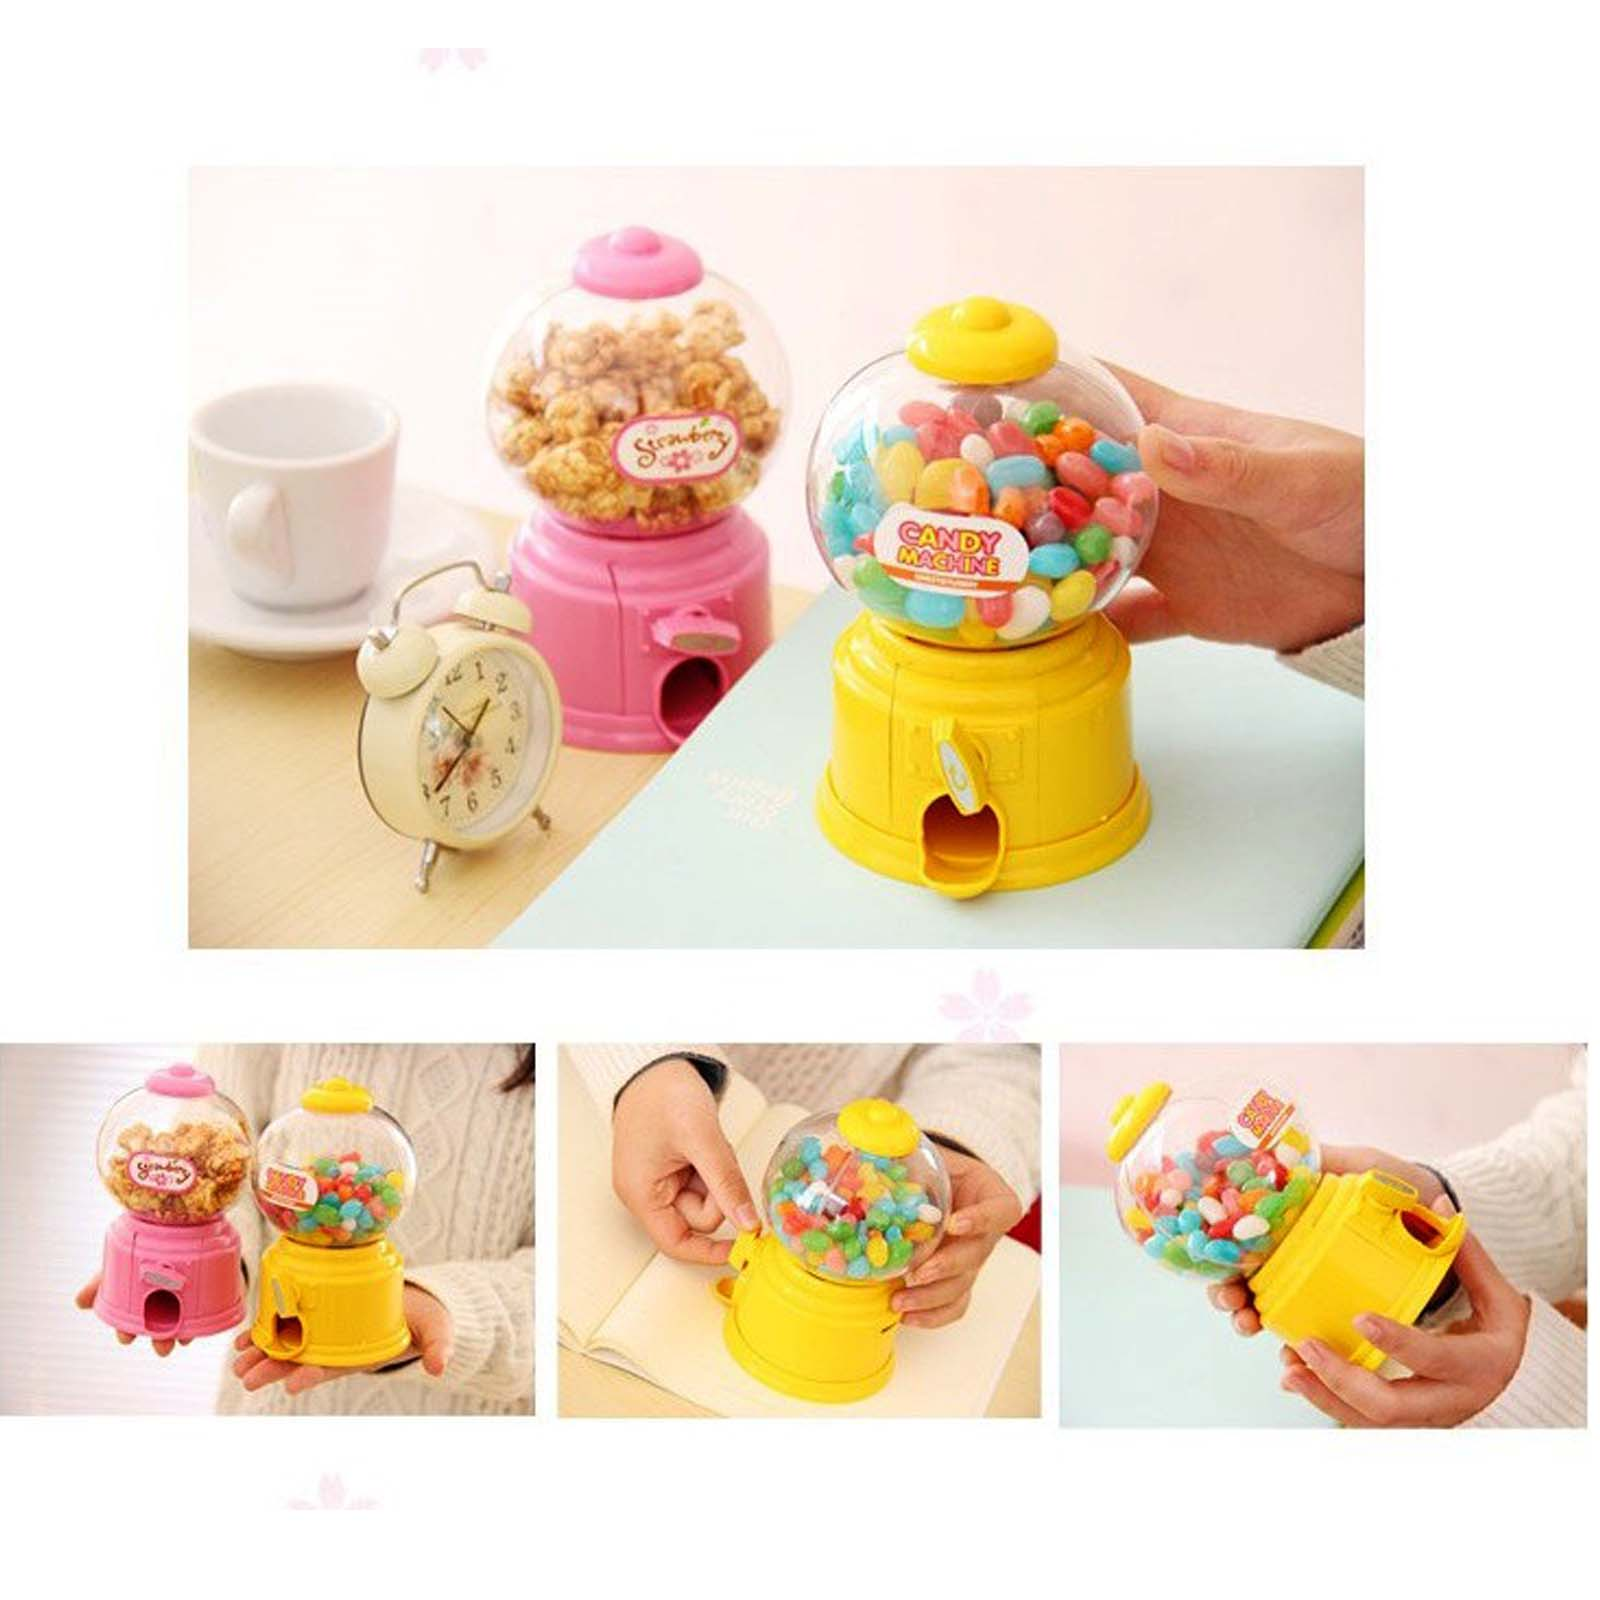 New Cute Sweets Mini Candy Dispenser Vending Machine Saving Bank Coin Kids Toy